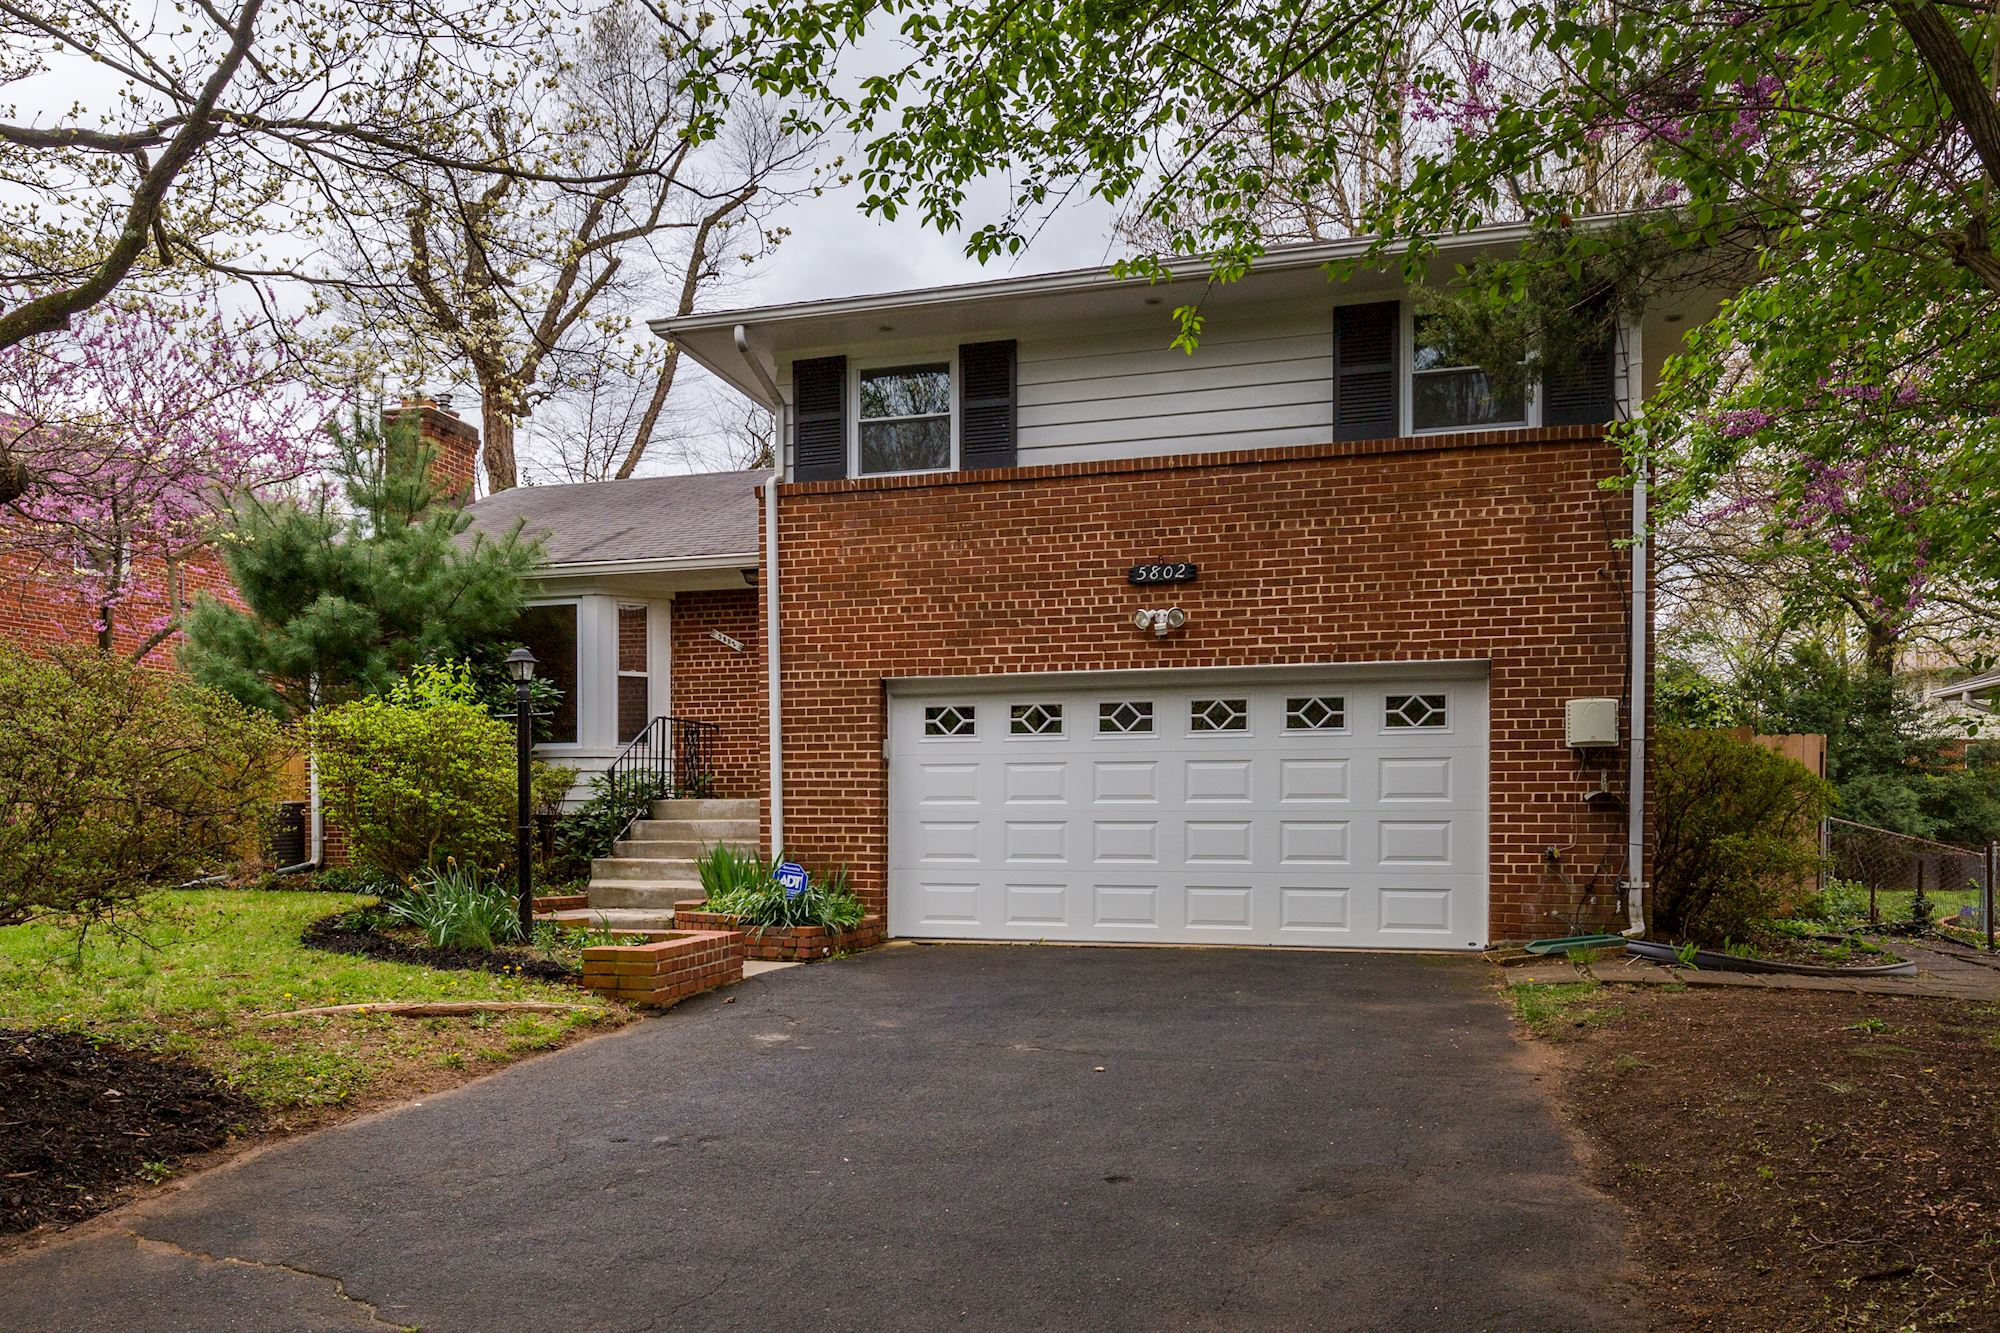 NEW LISTING: Turnkey Single Family Home Close To Downtown Bethesda